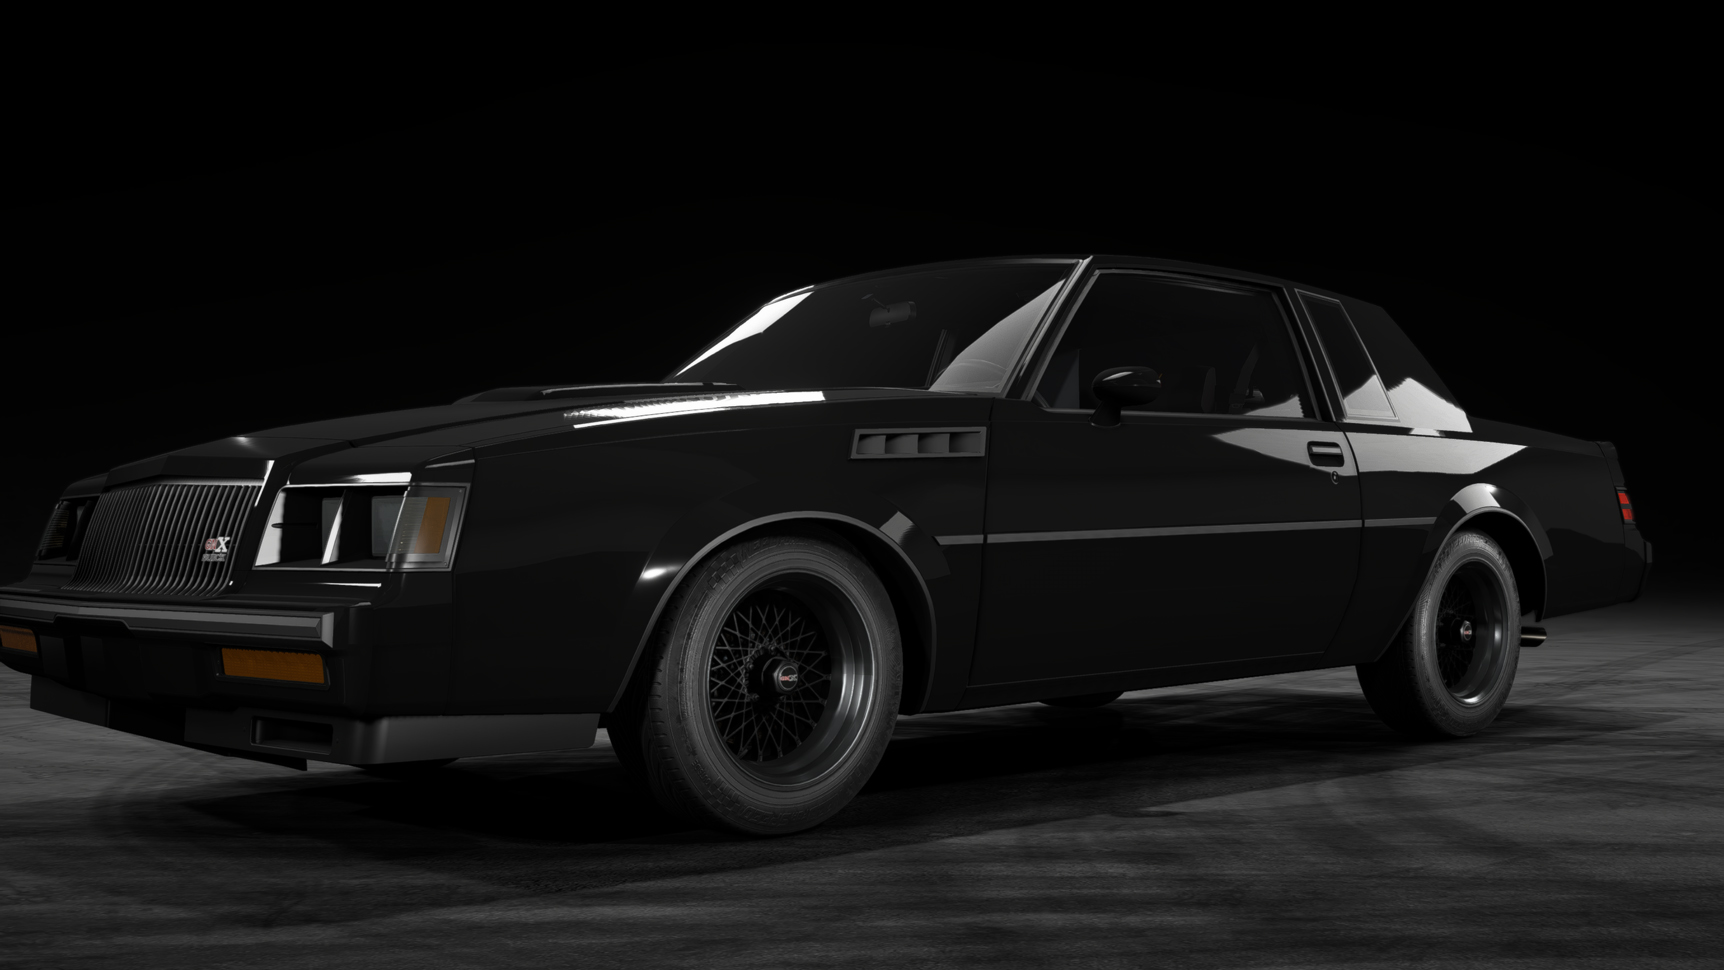 Buick Regal GNX (1987)